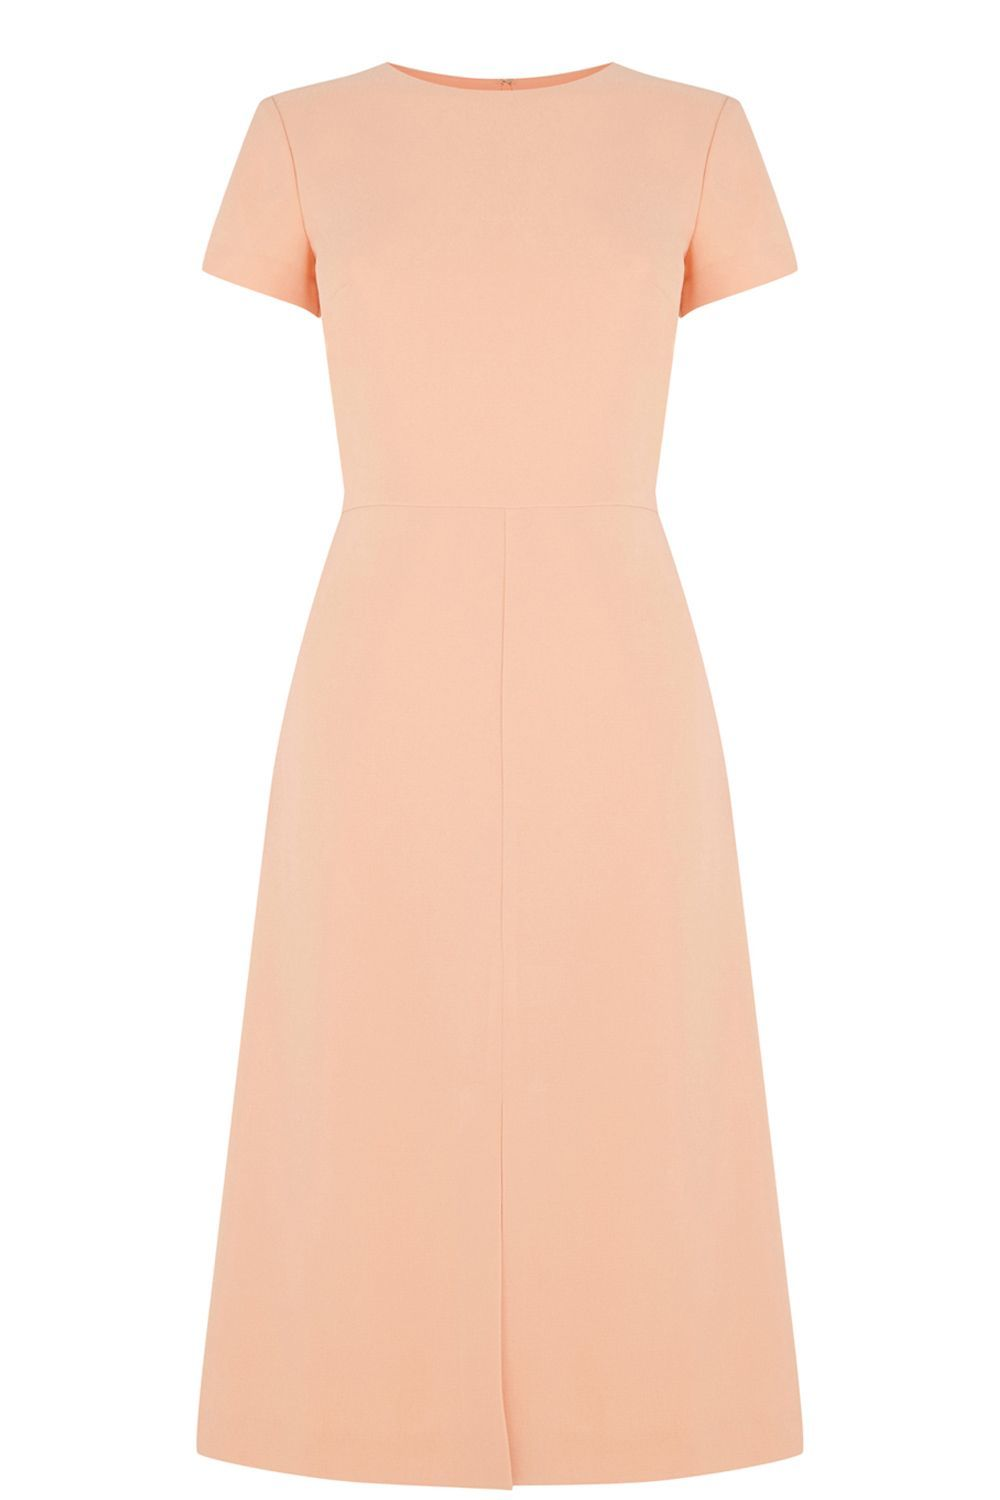 Split Front Midi Dress, Pastel Pink - style: shift; length: below the knee; sleeve style: capped; pattern: plain; predominant colour: nude; occasions: work, occasion, creative work; fit: soft a-line; fibres: polyester/polyamide - 100%; neckline: crew; sleeve length: short sleeve; texture group: crepes; pattern type: fabric; season: s/s 2016; wardrobe: investment